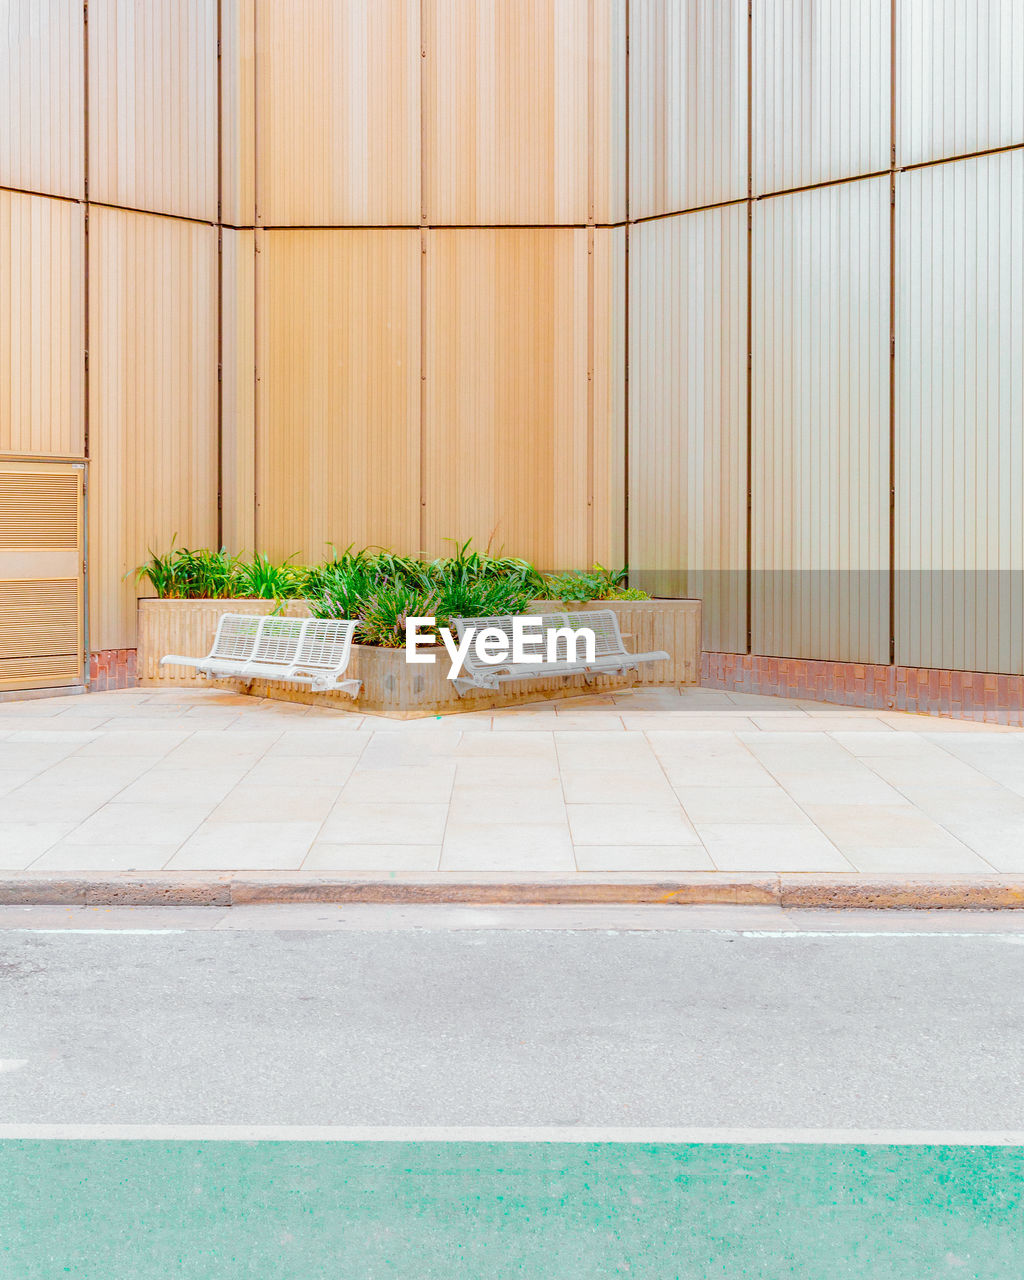 plant, architecture, green color, no people, nature, potted plant, built structure, growth, flooring, wall - building feature, day, wood - material, outdoors, building exterior, grass, tile, city, entrance, footpath, tiled floor